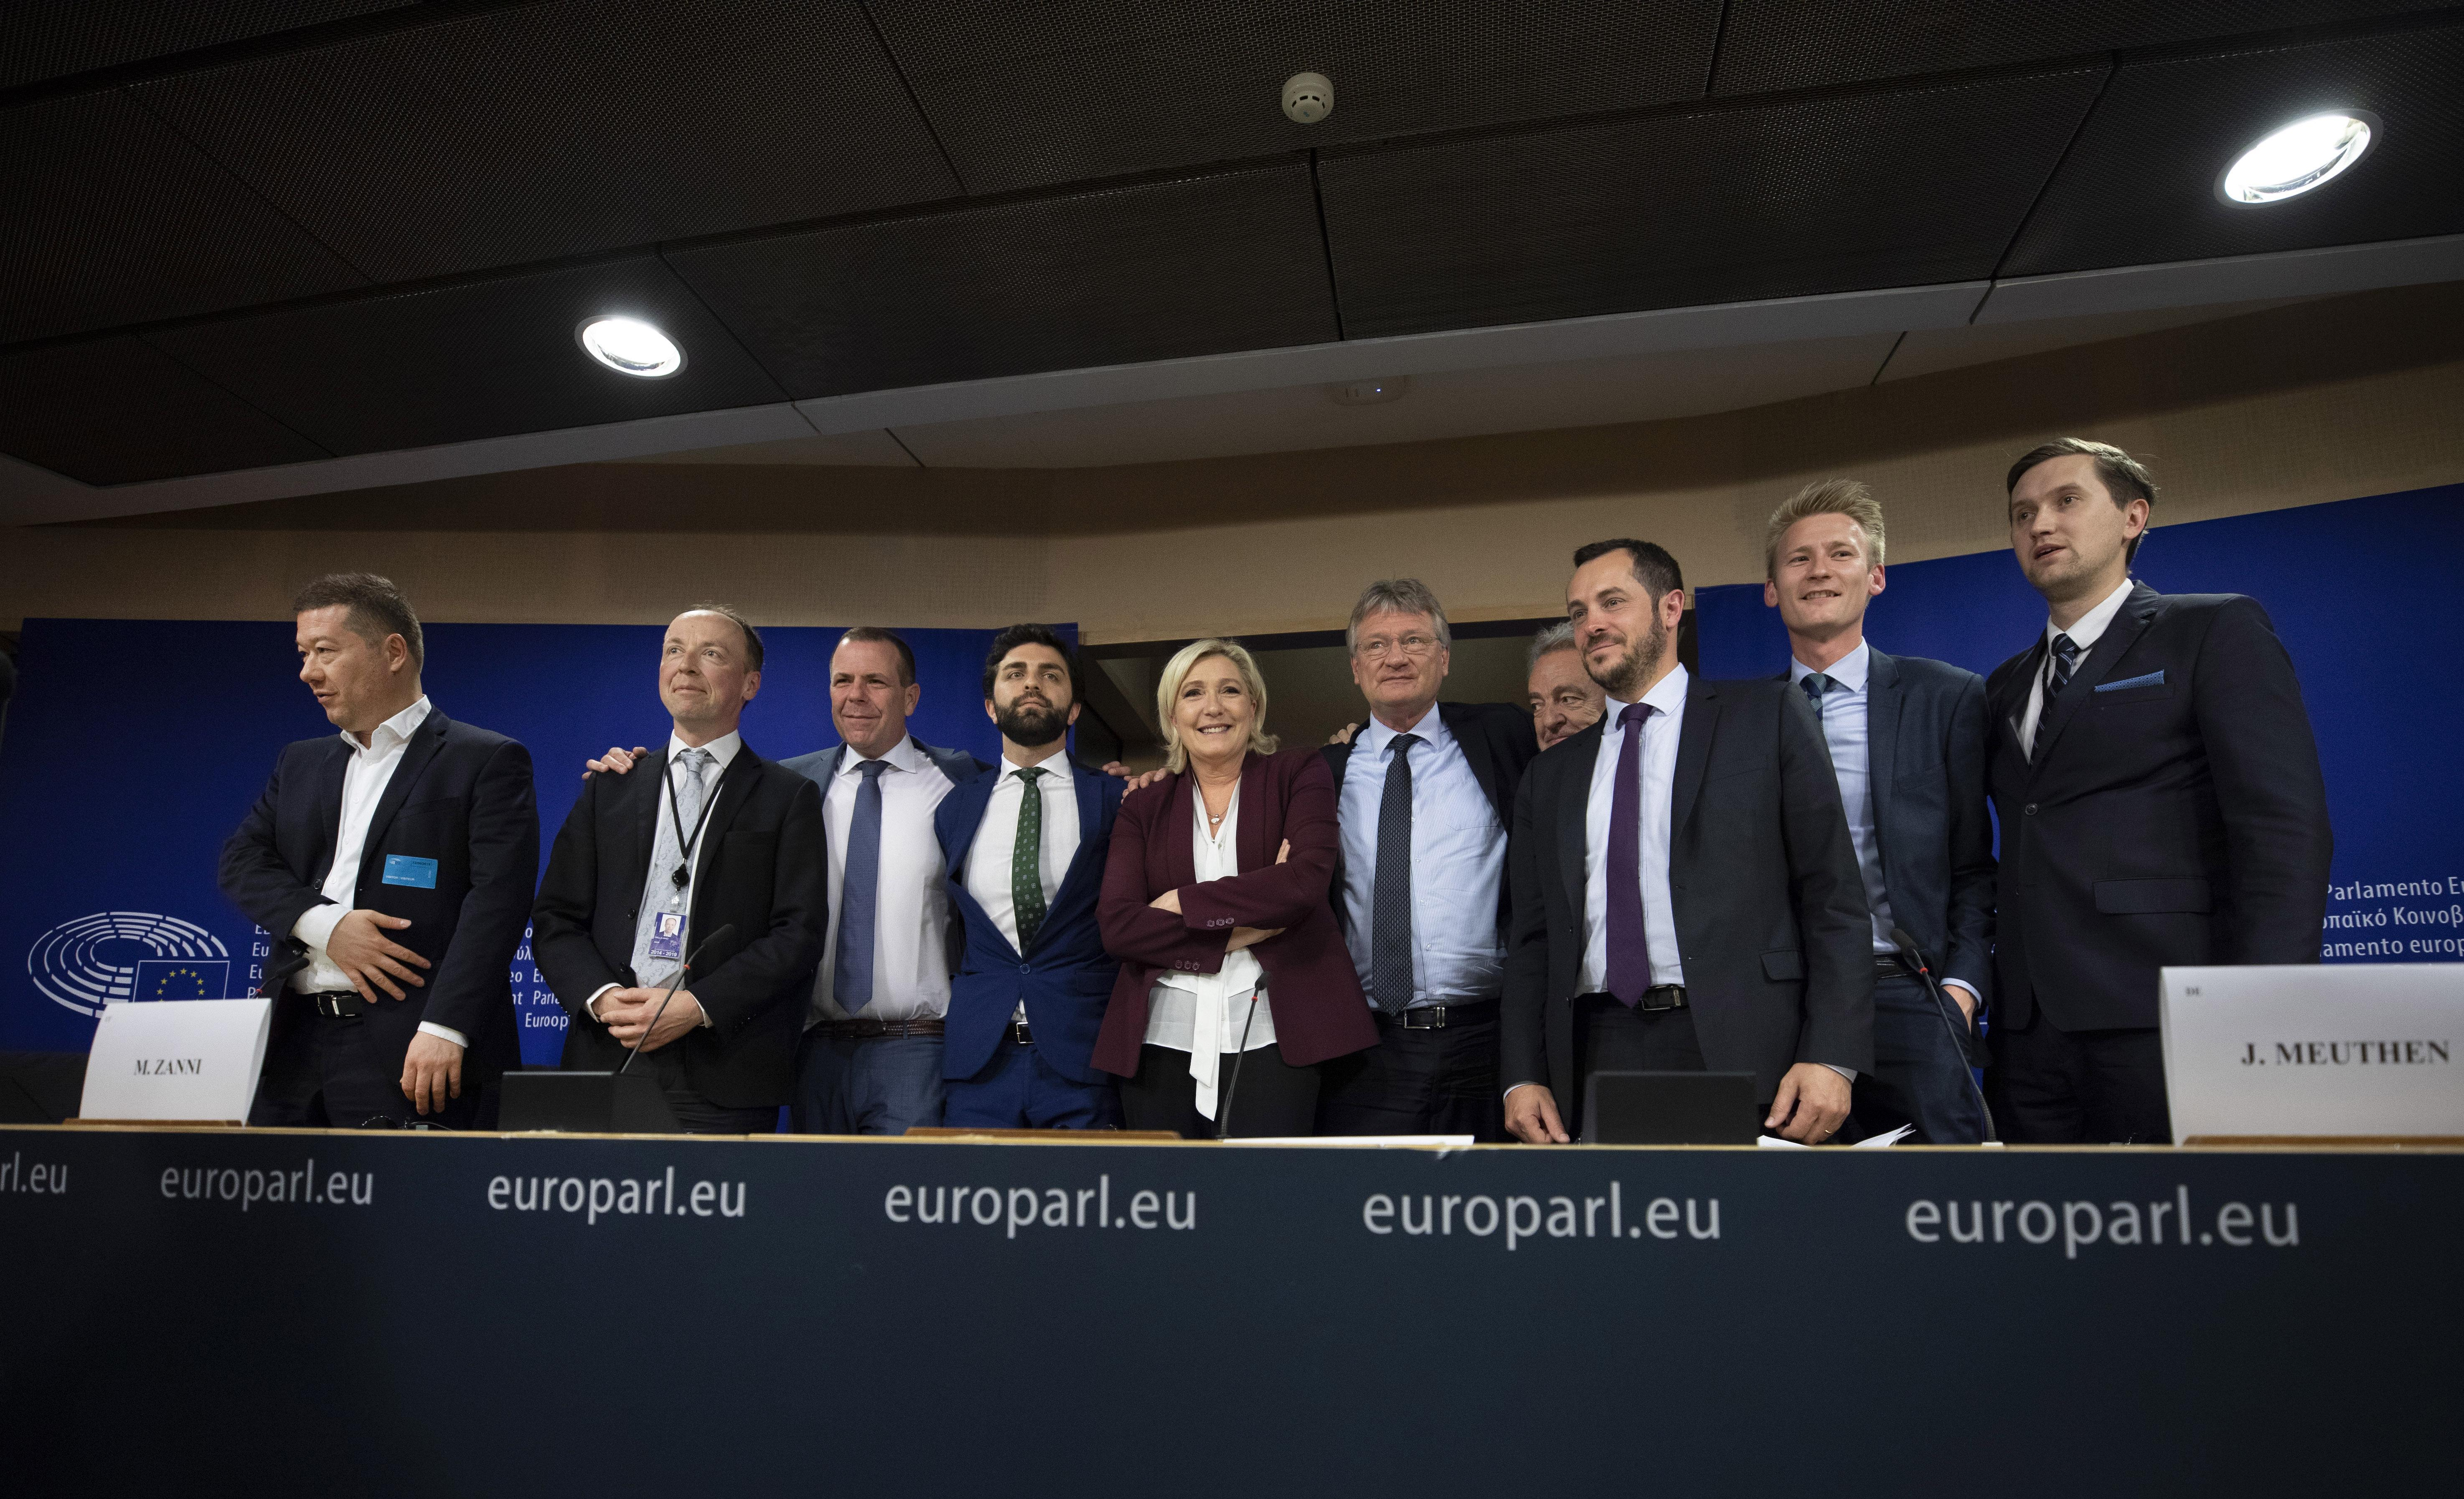 Europe's populists rebrand but policies remain the same